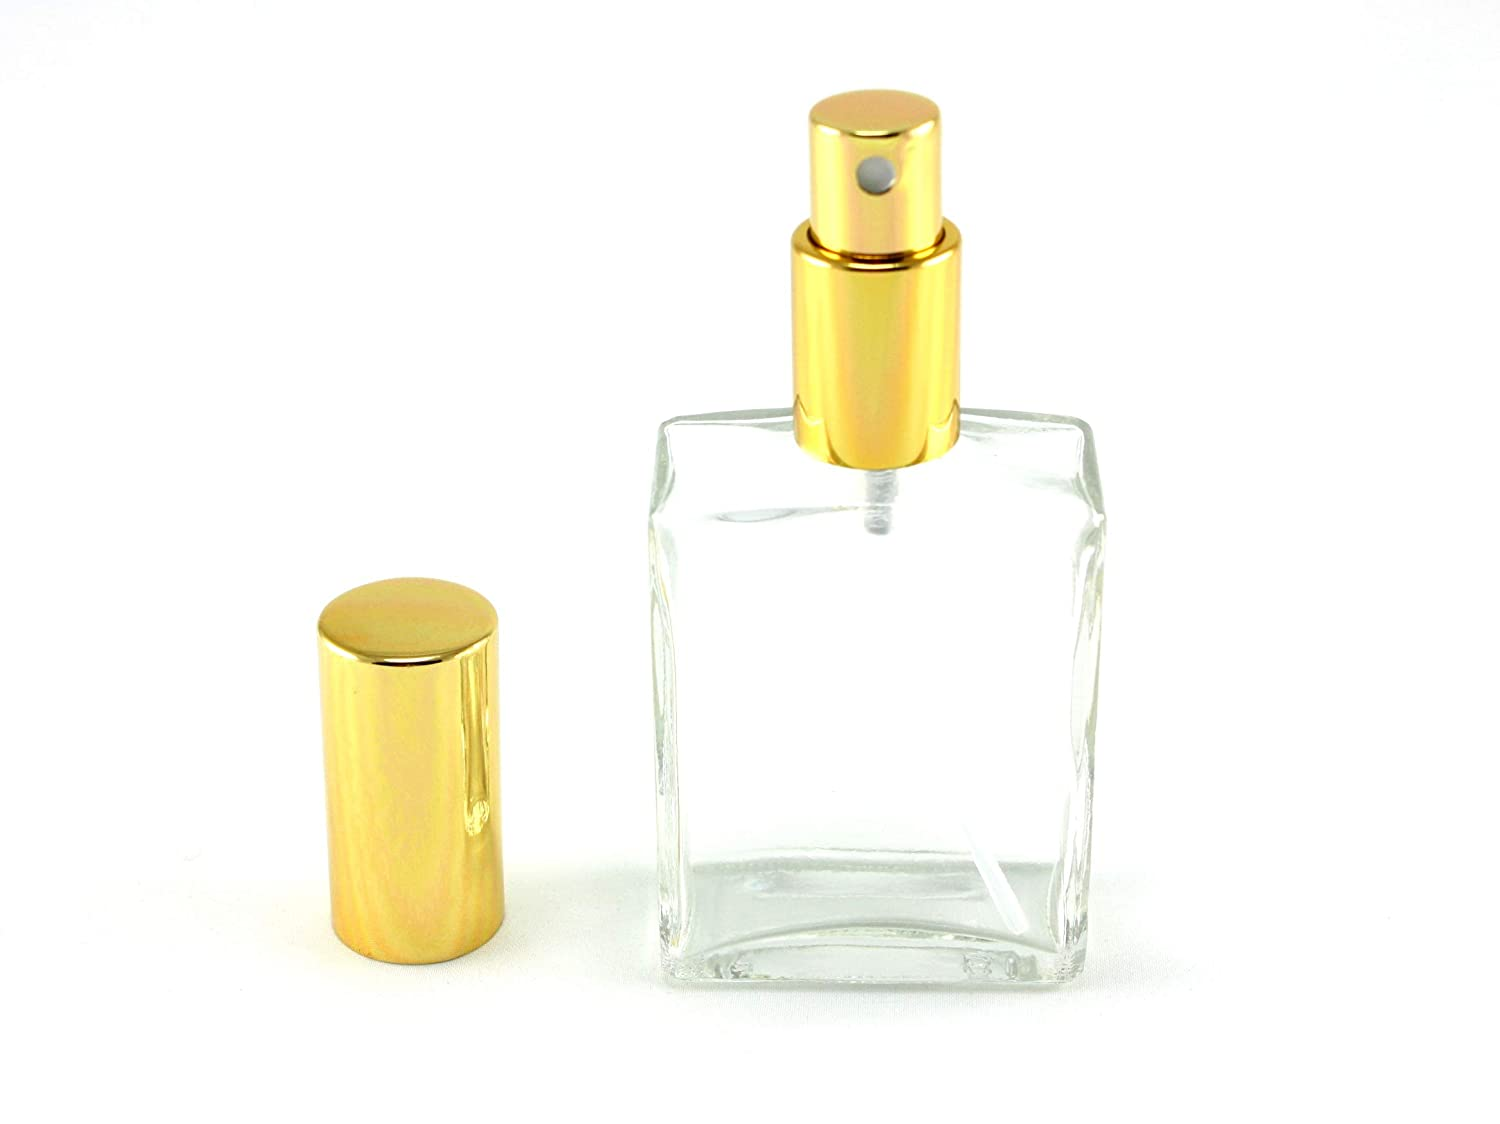 Skyway Refillable Travel Size 2 OZ Perfume Fragrance Bottle TSA Approved Pump Atomizer Spray Perfect for Purse and Traveling – Glass with Gold Accents